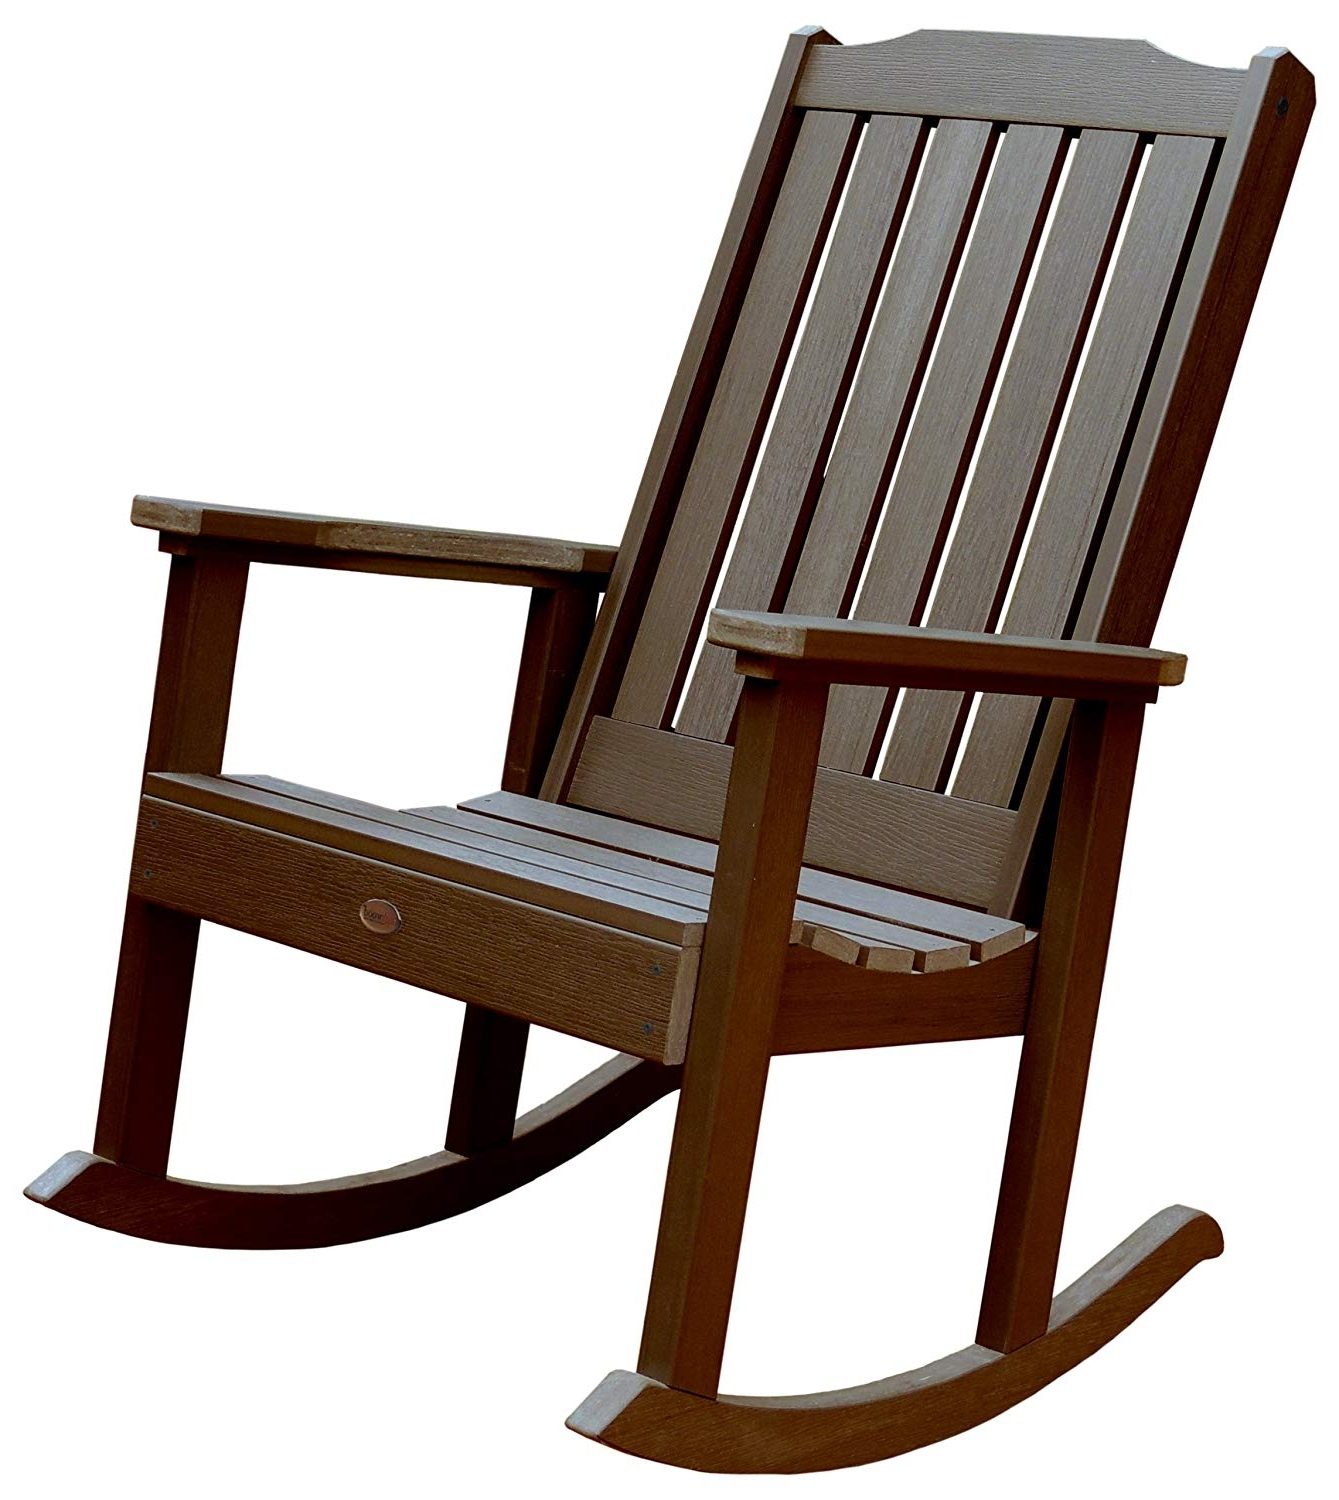 Amazon : Highwood Lehigh Rocking Chair, Weathered Acorn : Patio Intended For Popular Resin Patio Rocking Chairs (View 14 of 15)